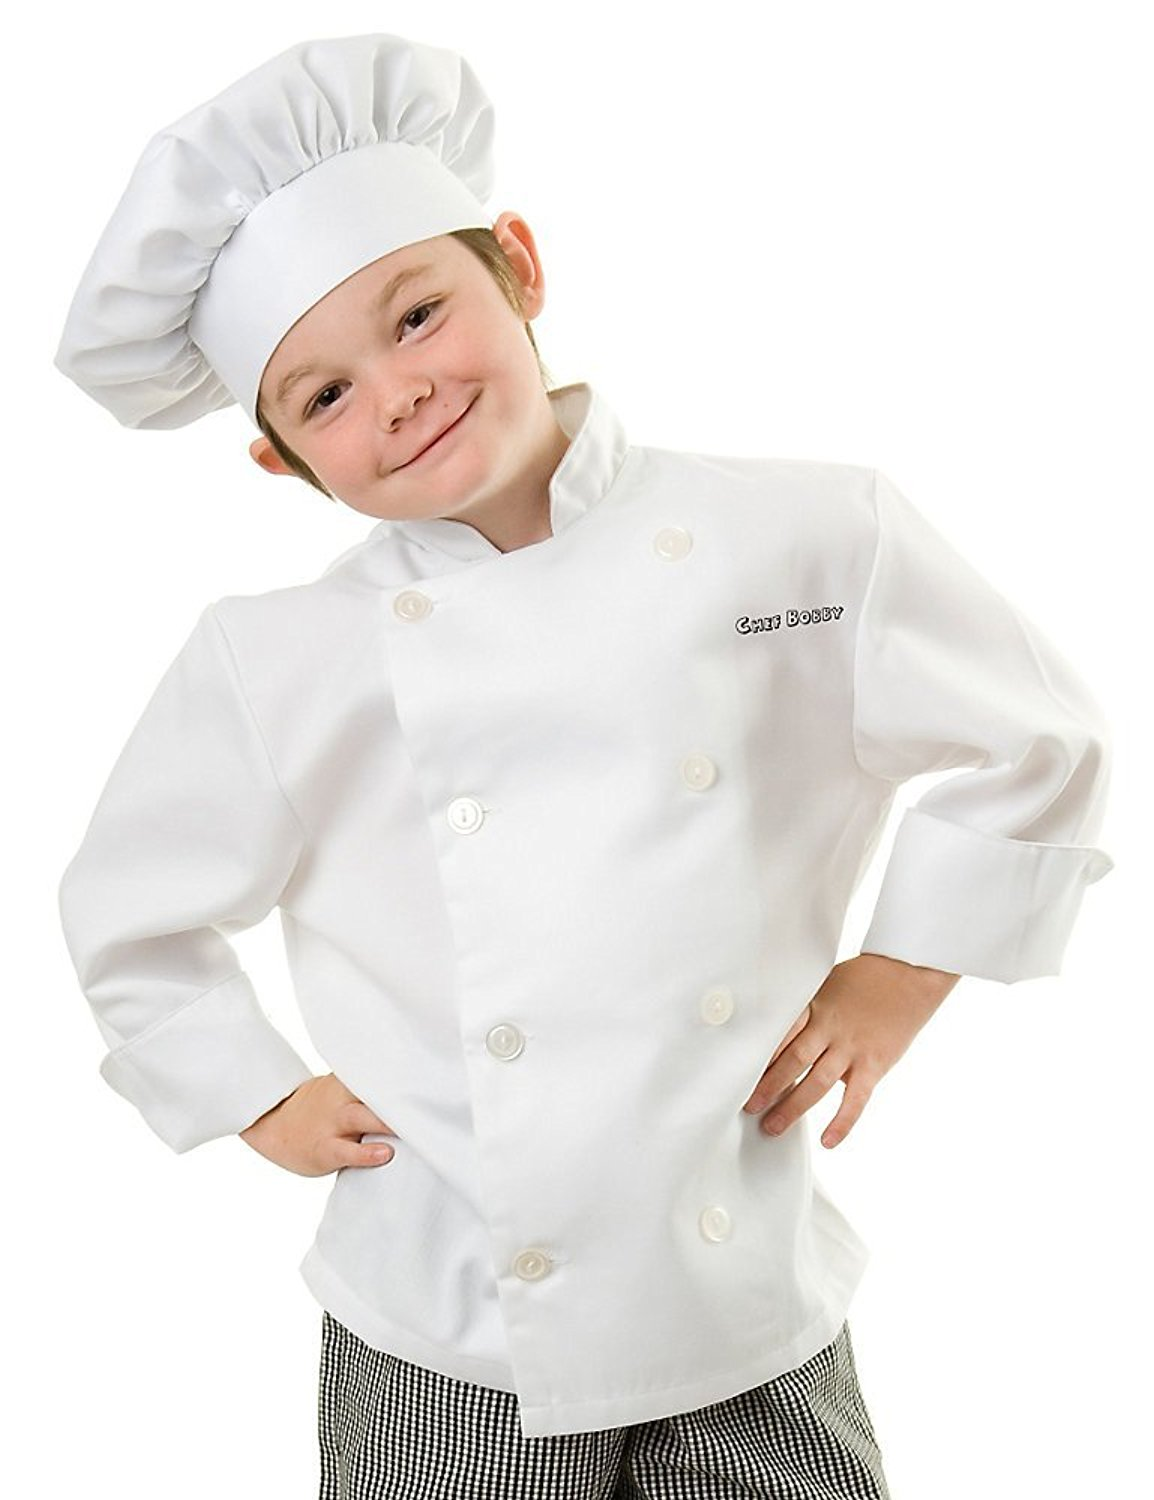 personalized kid's chef coat